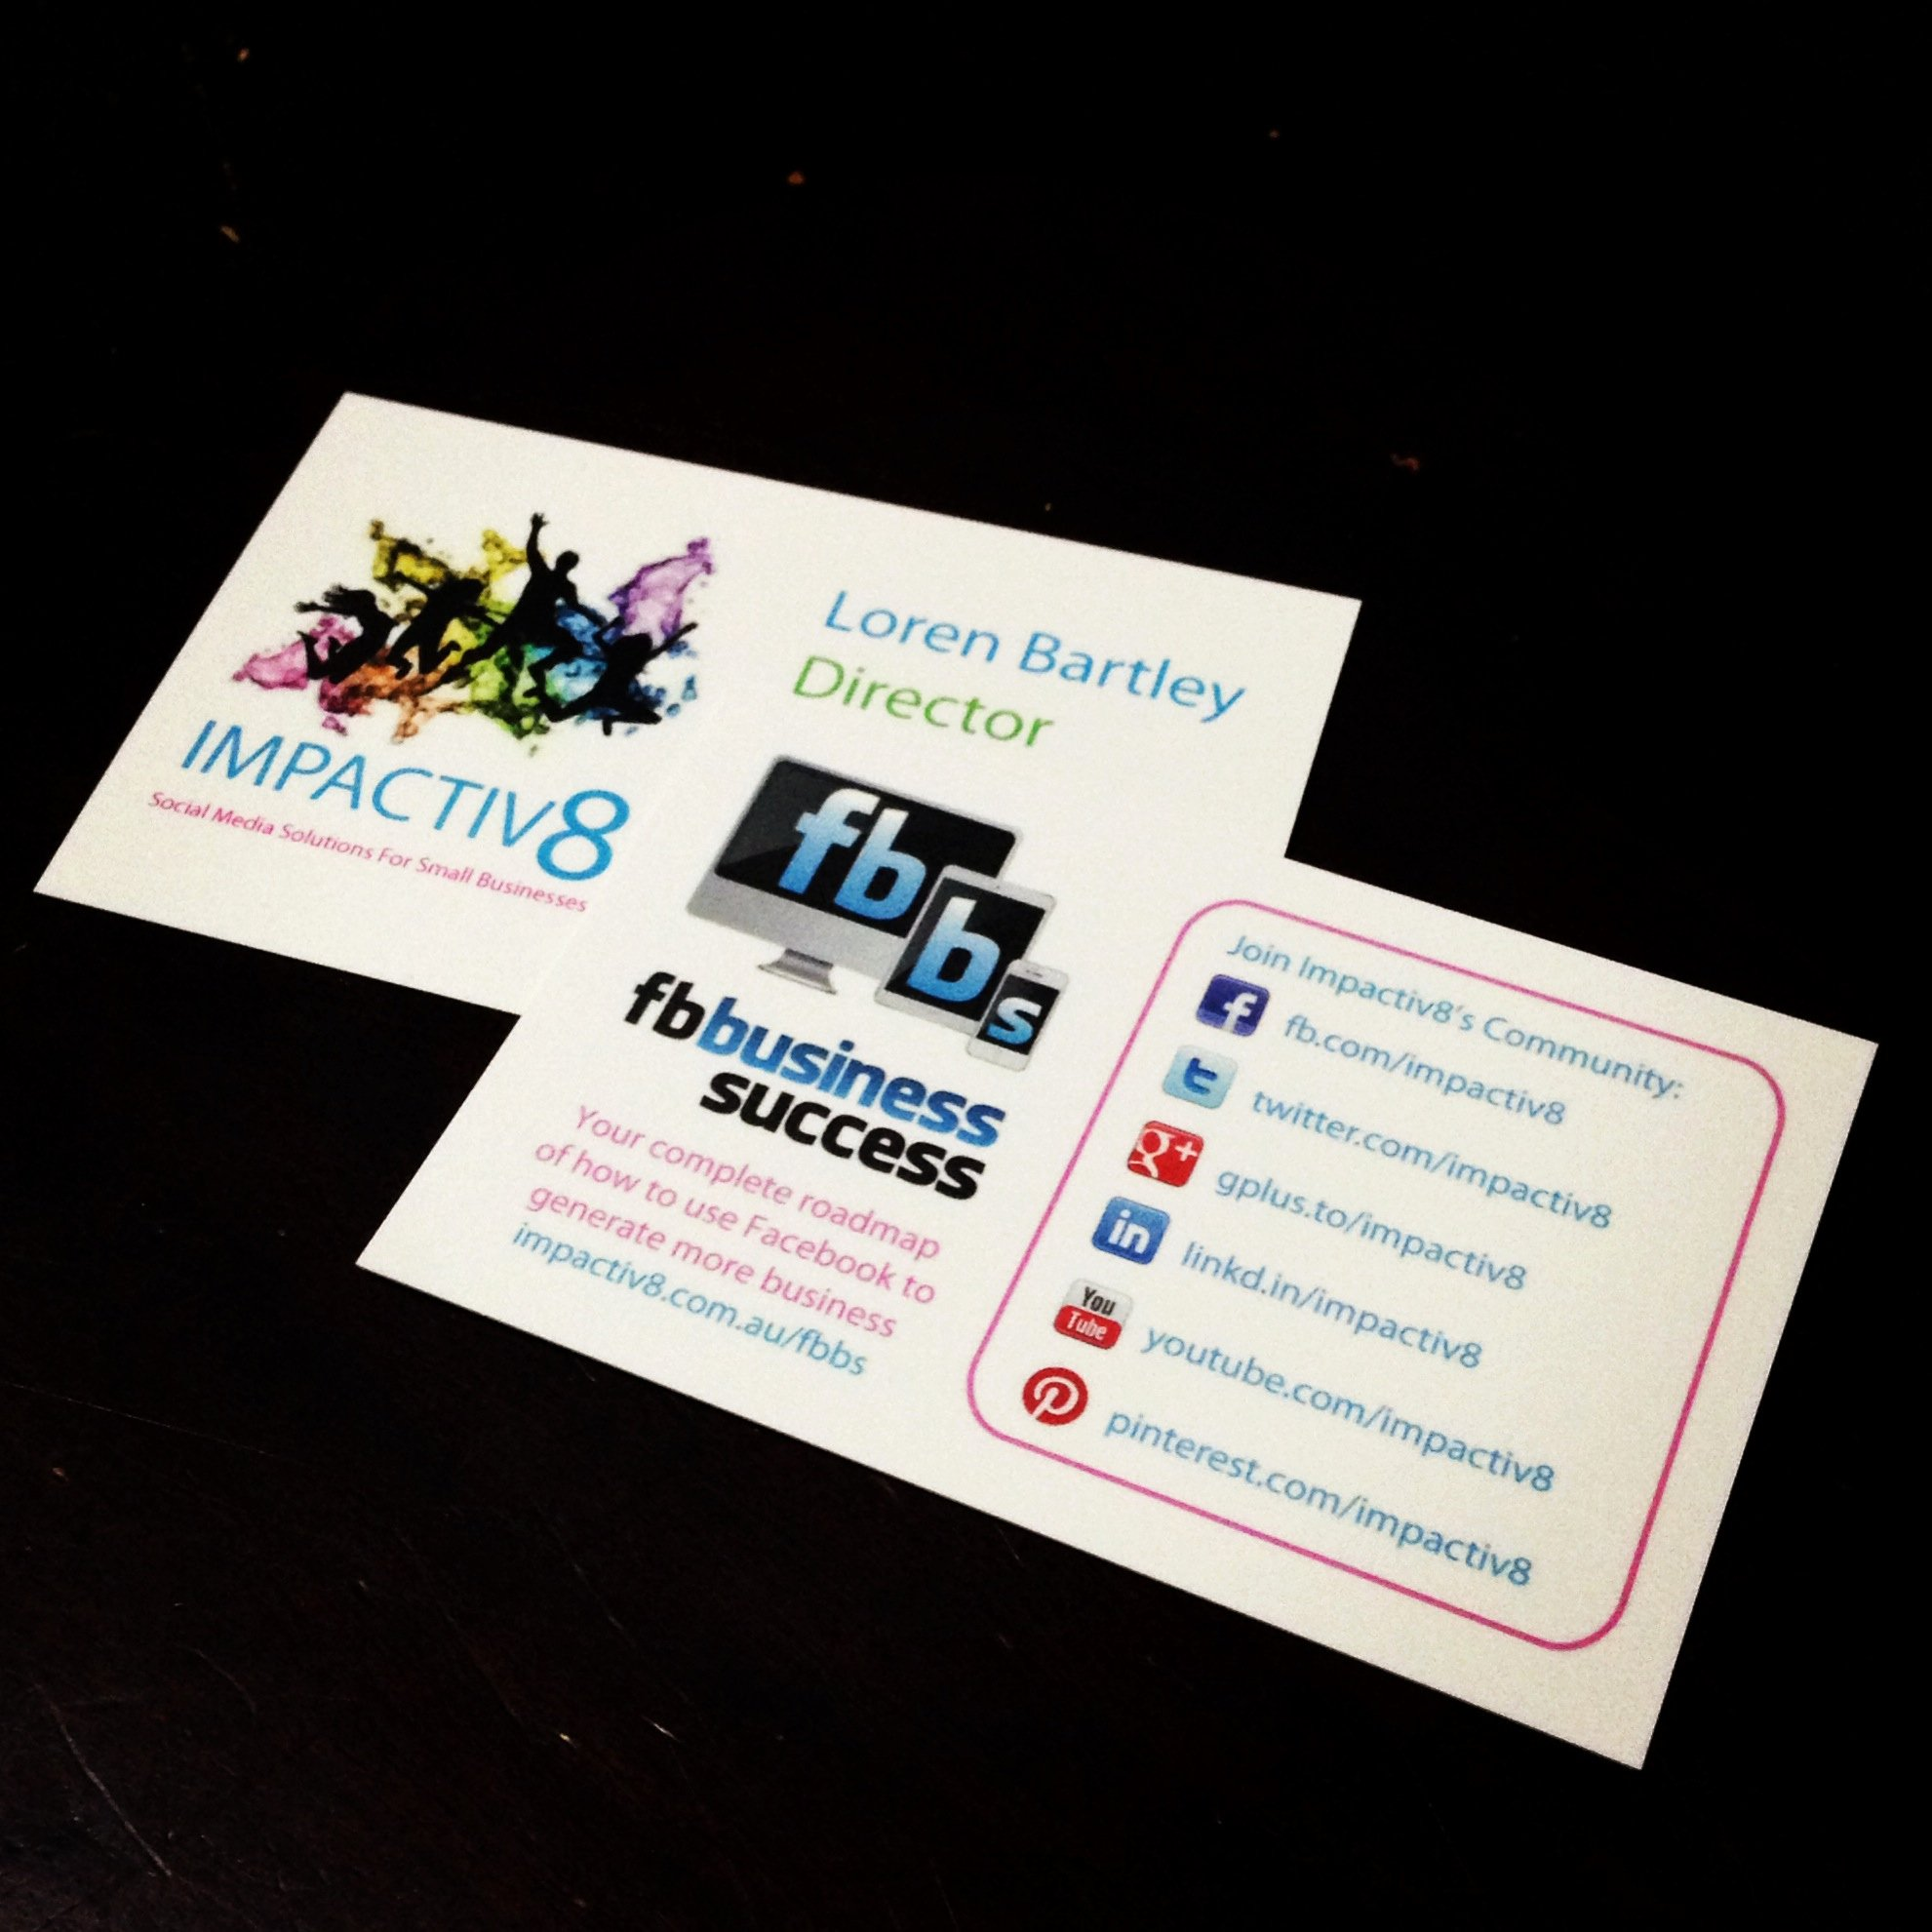 Social Media On Business Card Awesome Page Promotion Ideas Examples What Other Businesses are Doing